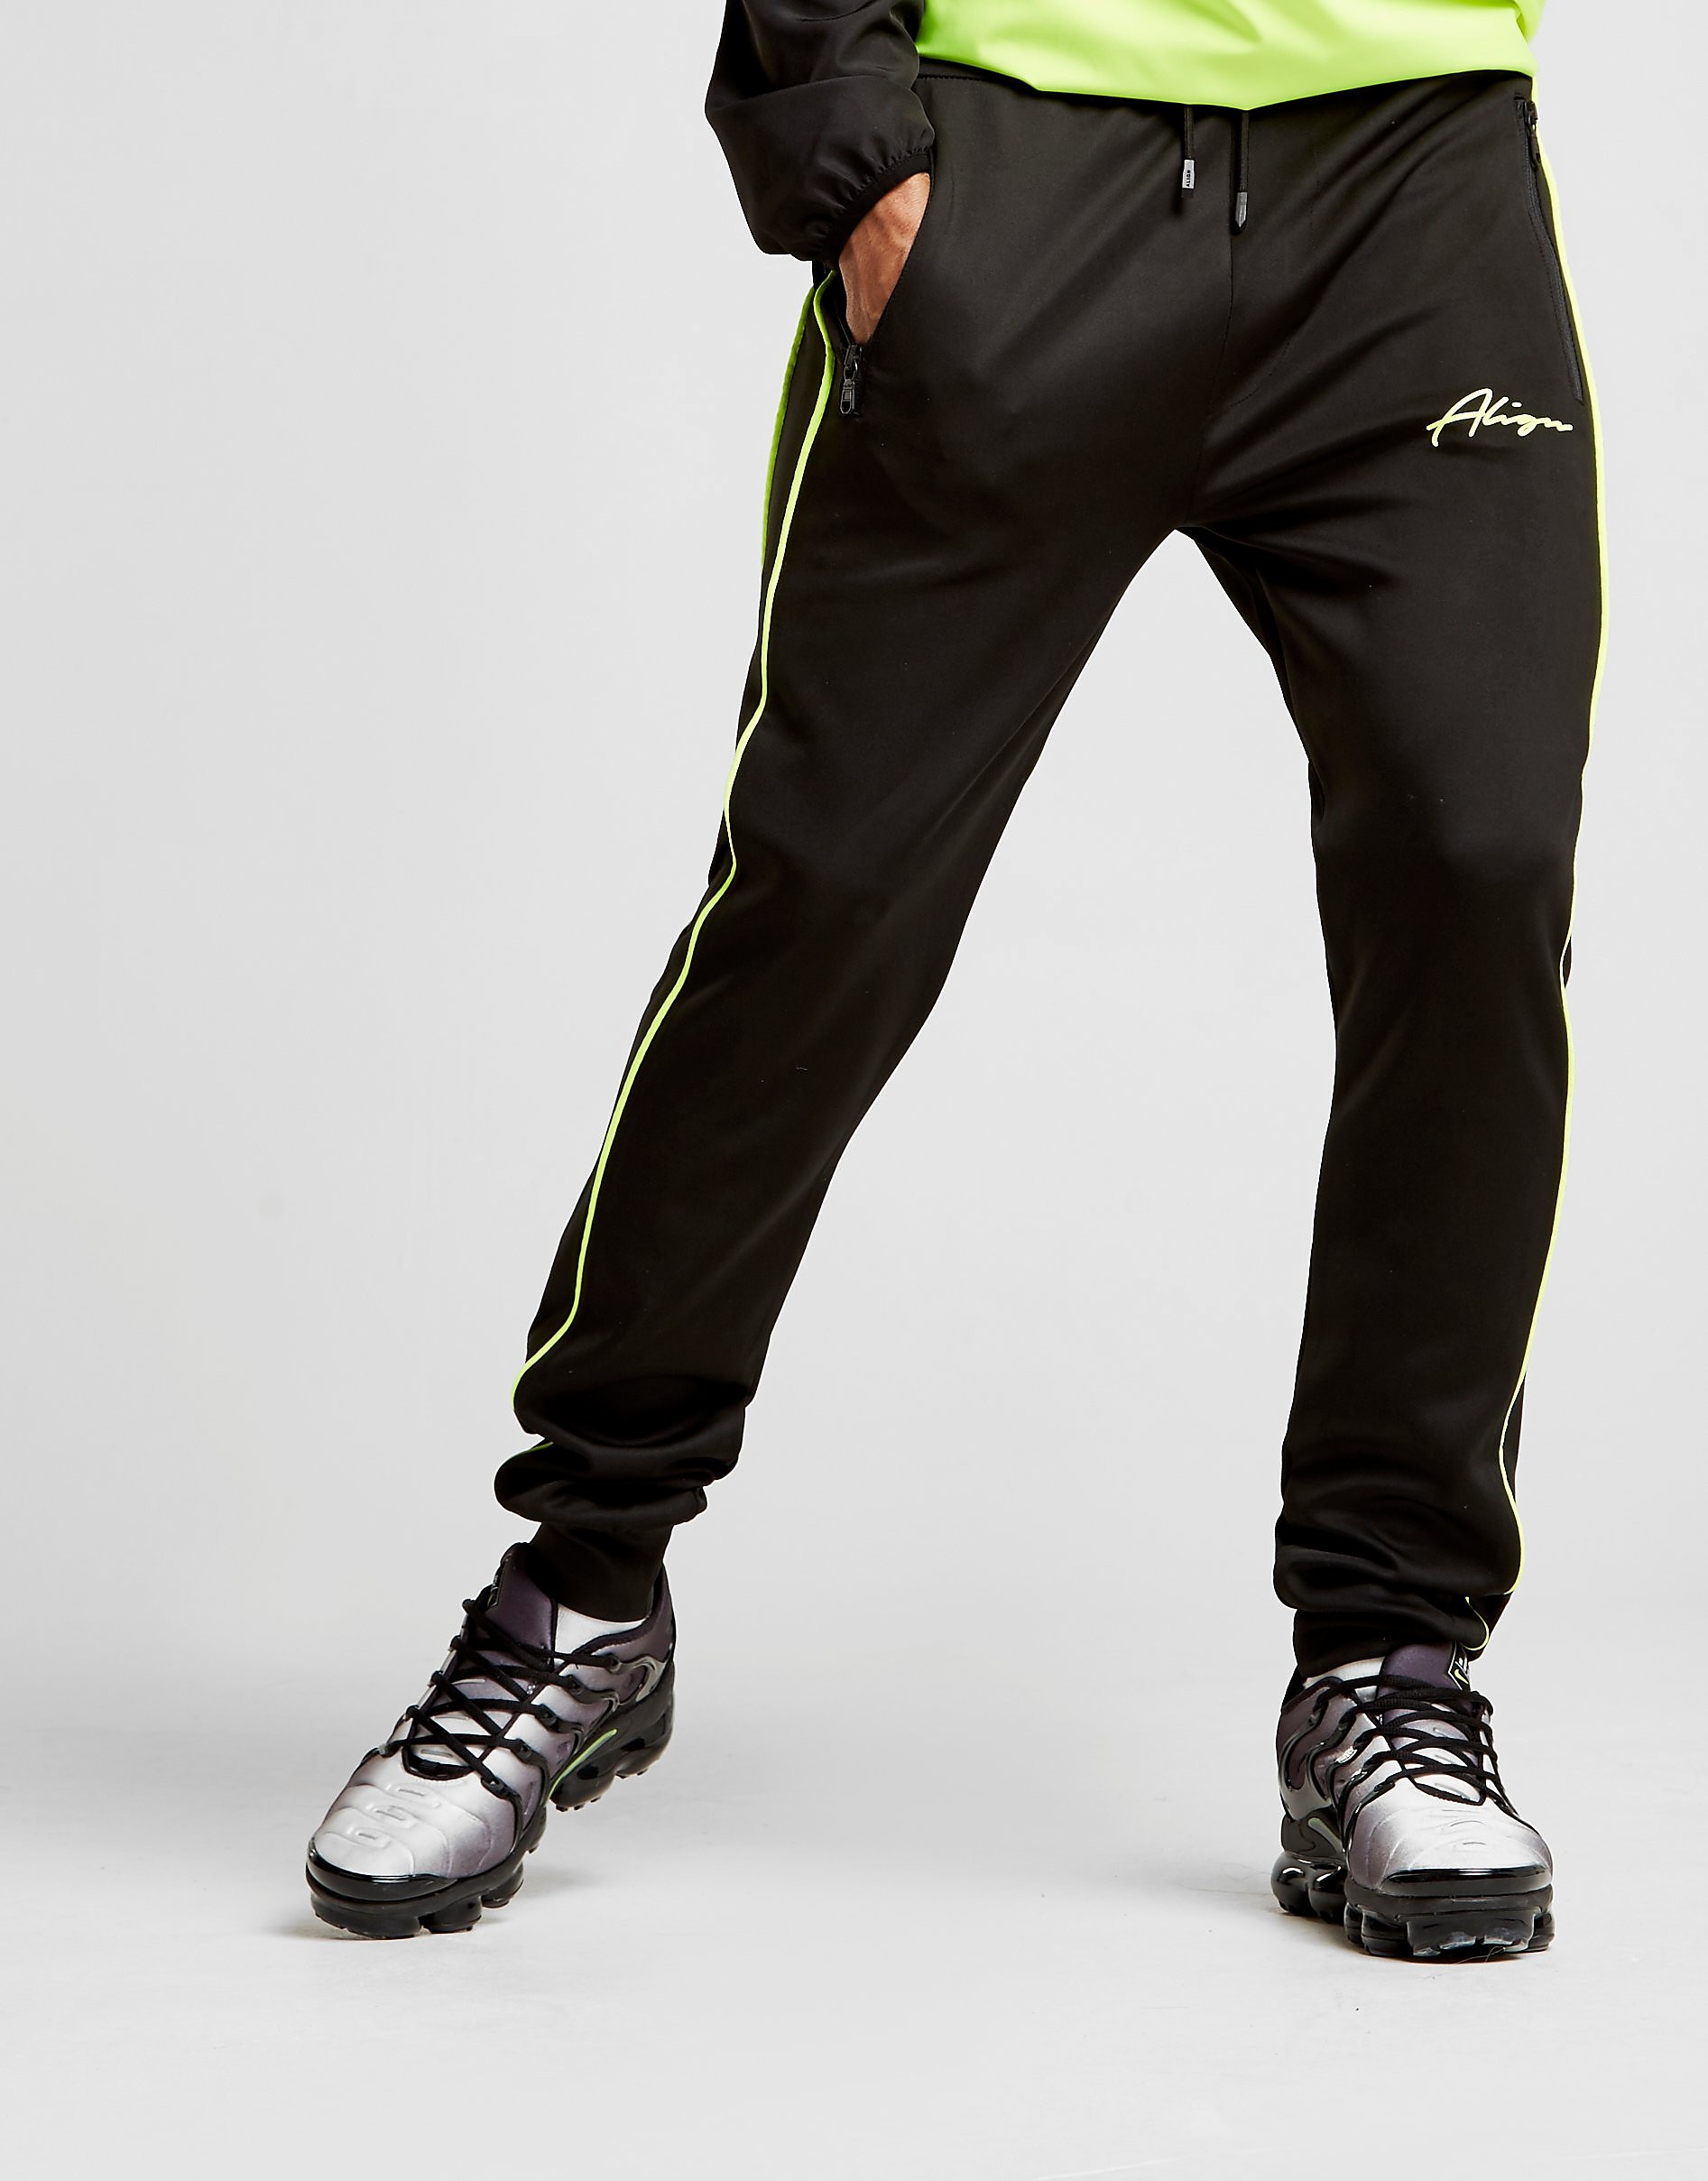 Align Signature Poly Pants